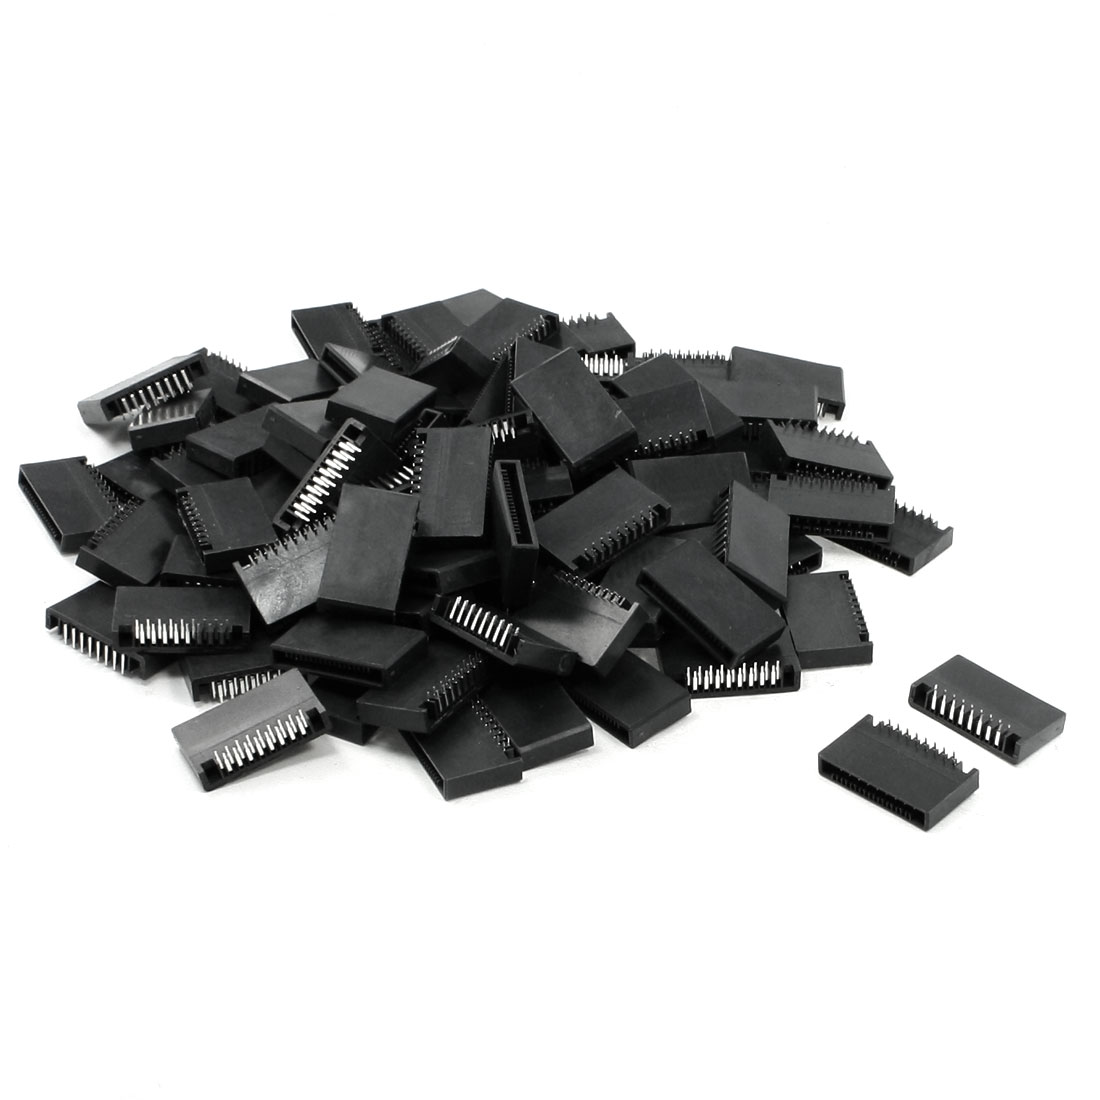 100 Pcs Dual Rows 17 Pins S-17P Right Angle Header for Breadboard